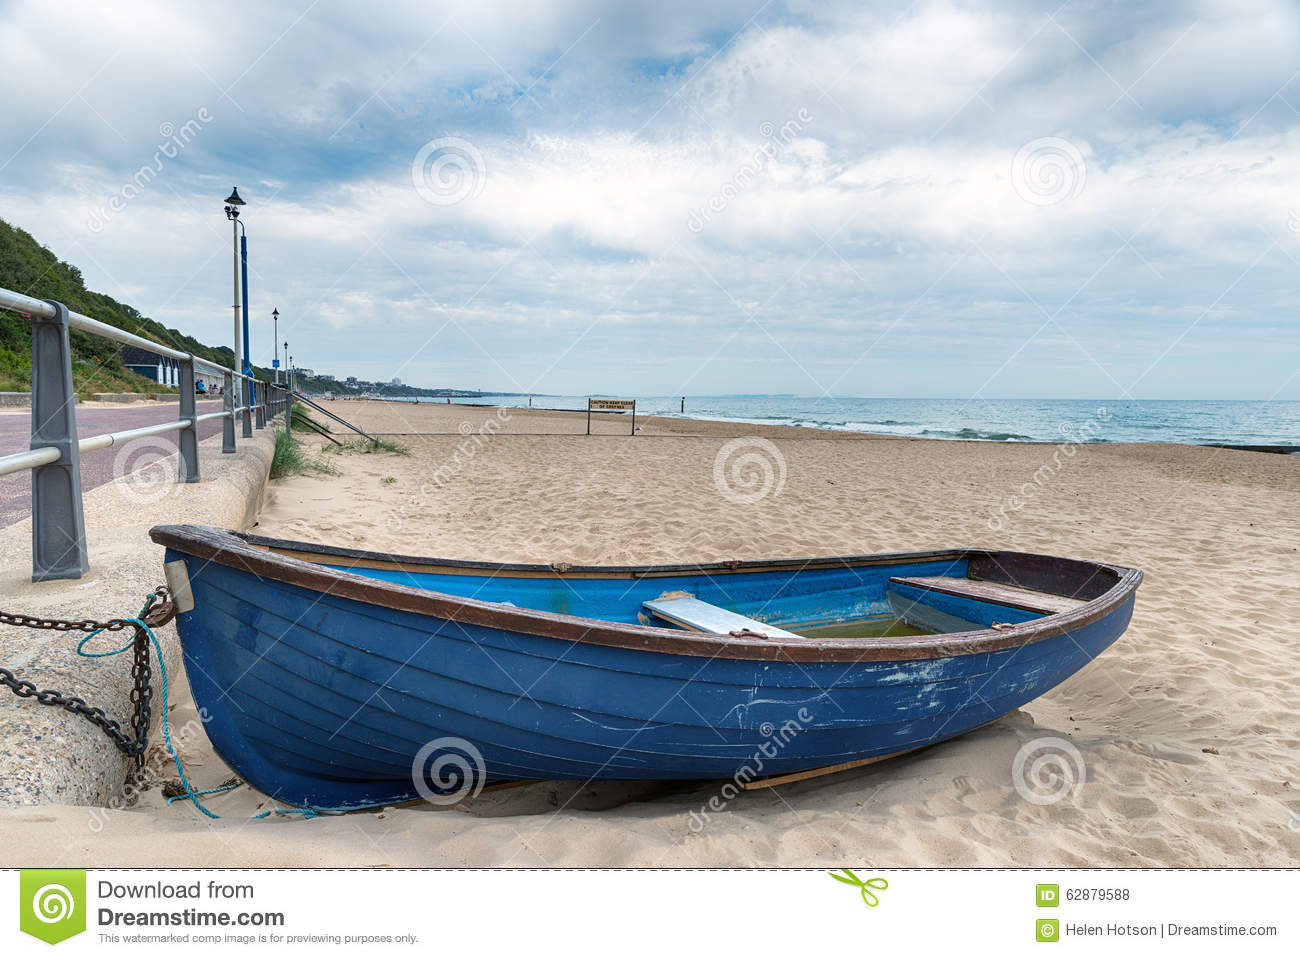 rowing boat on the beach at Bournemouth on the Dorset coast.